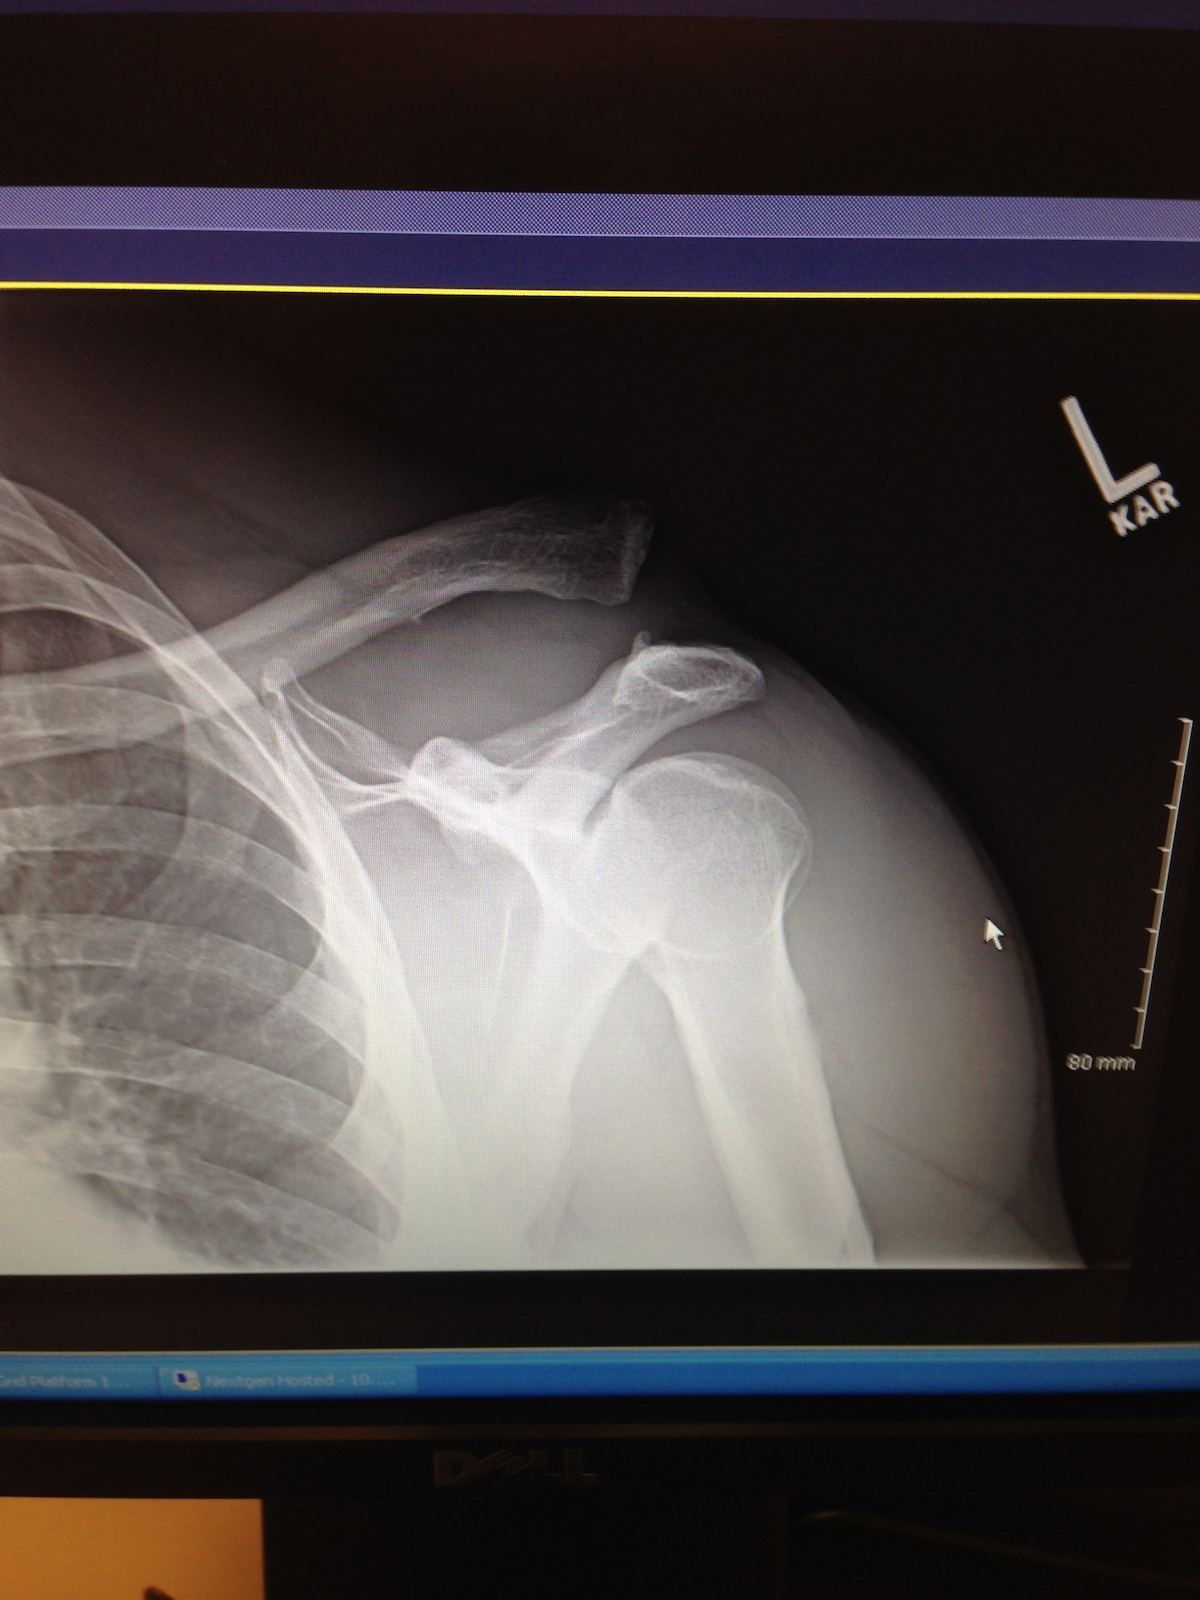 L5 complete separation of left shoulder (my good shoulder) with complete rupture of all ligaments. Titanium hardware, a clean shave of loose cartilage with cadaver tendon inserted. Cause; pretending I was 23 hucking care free, hitting a hip jump and and landing like I was actually 50years old.